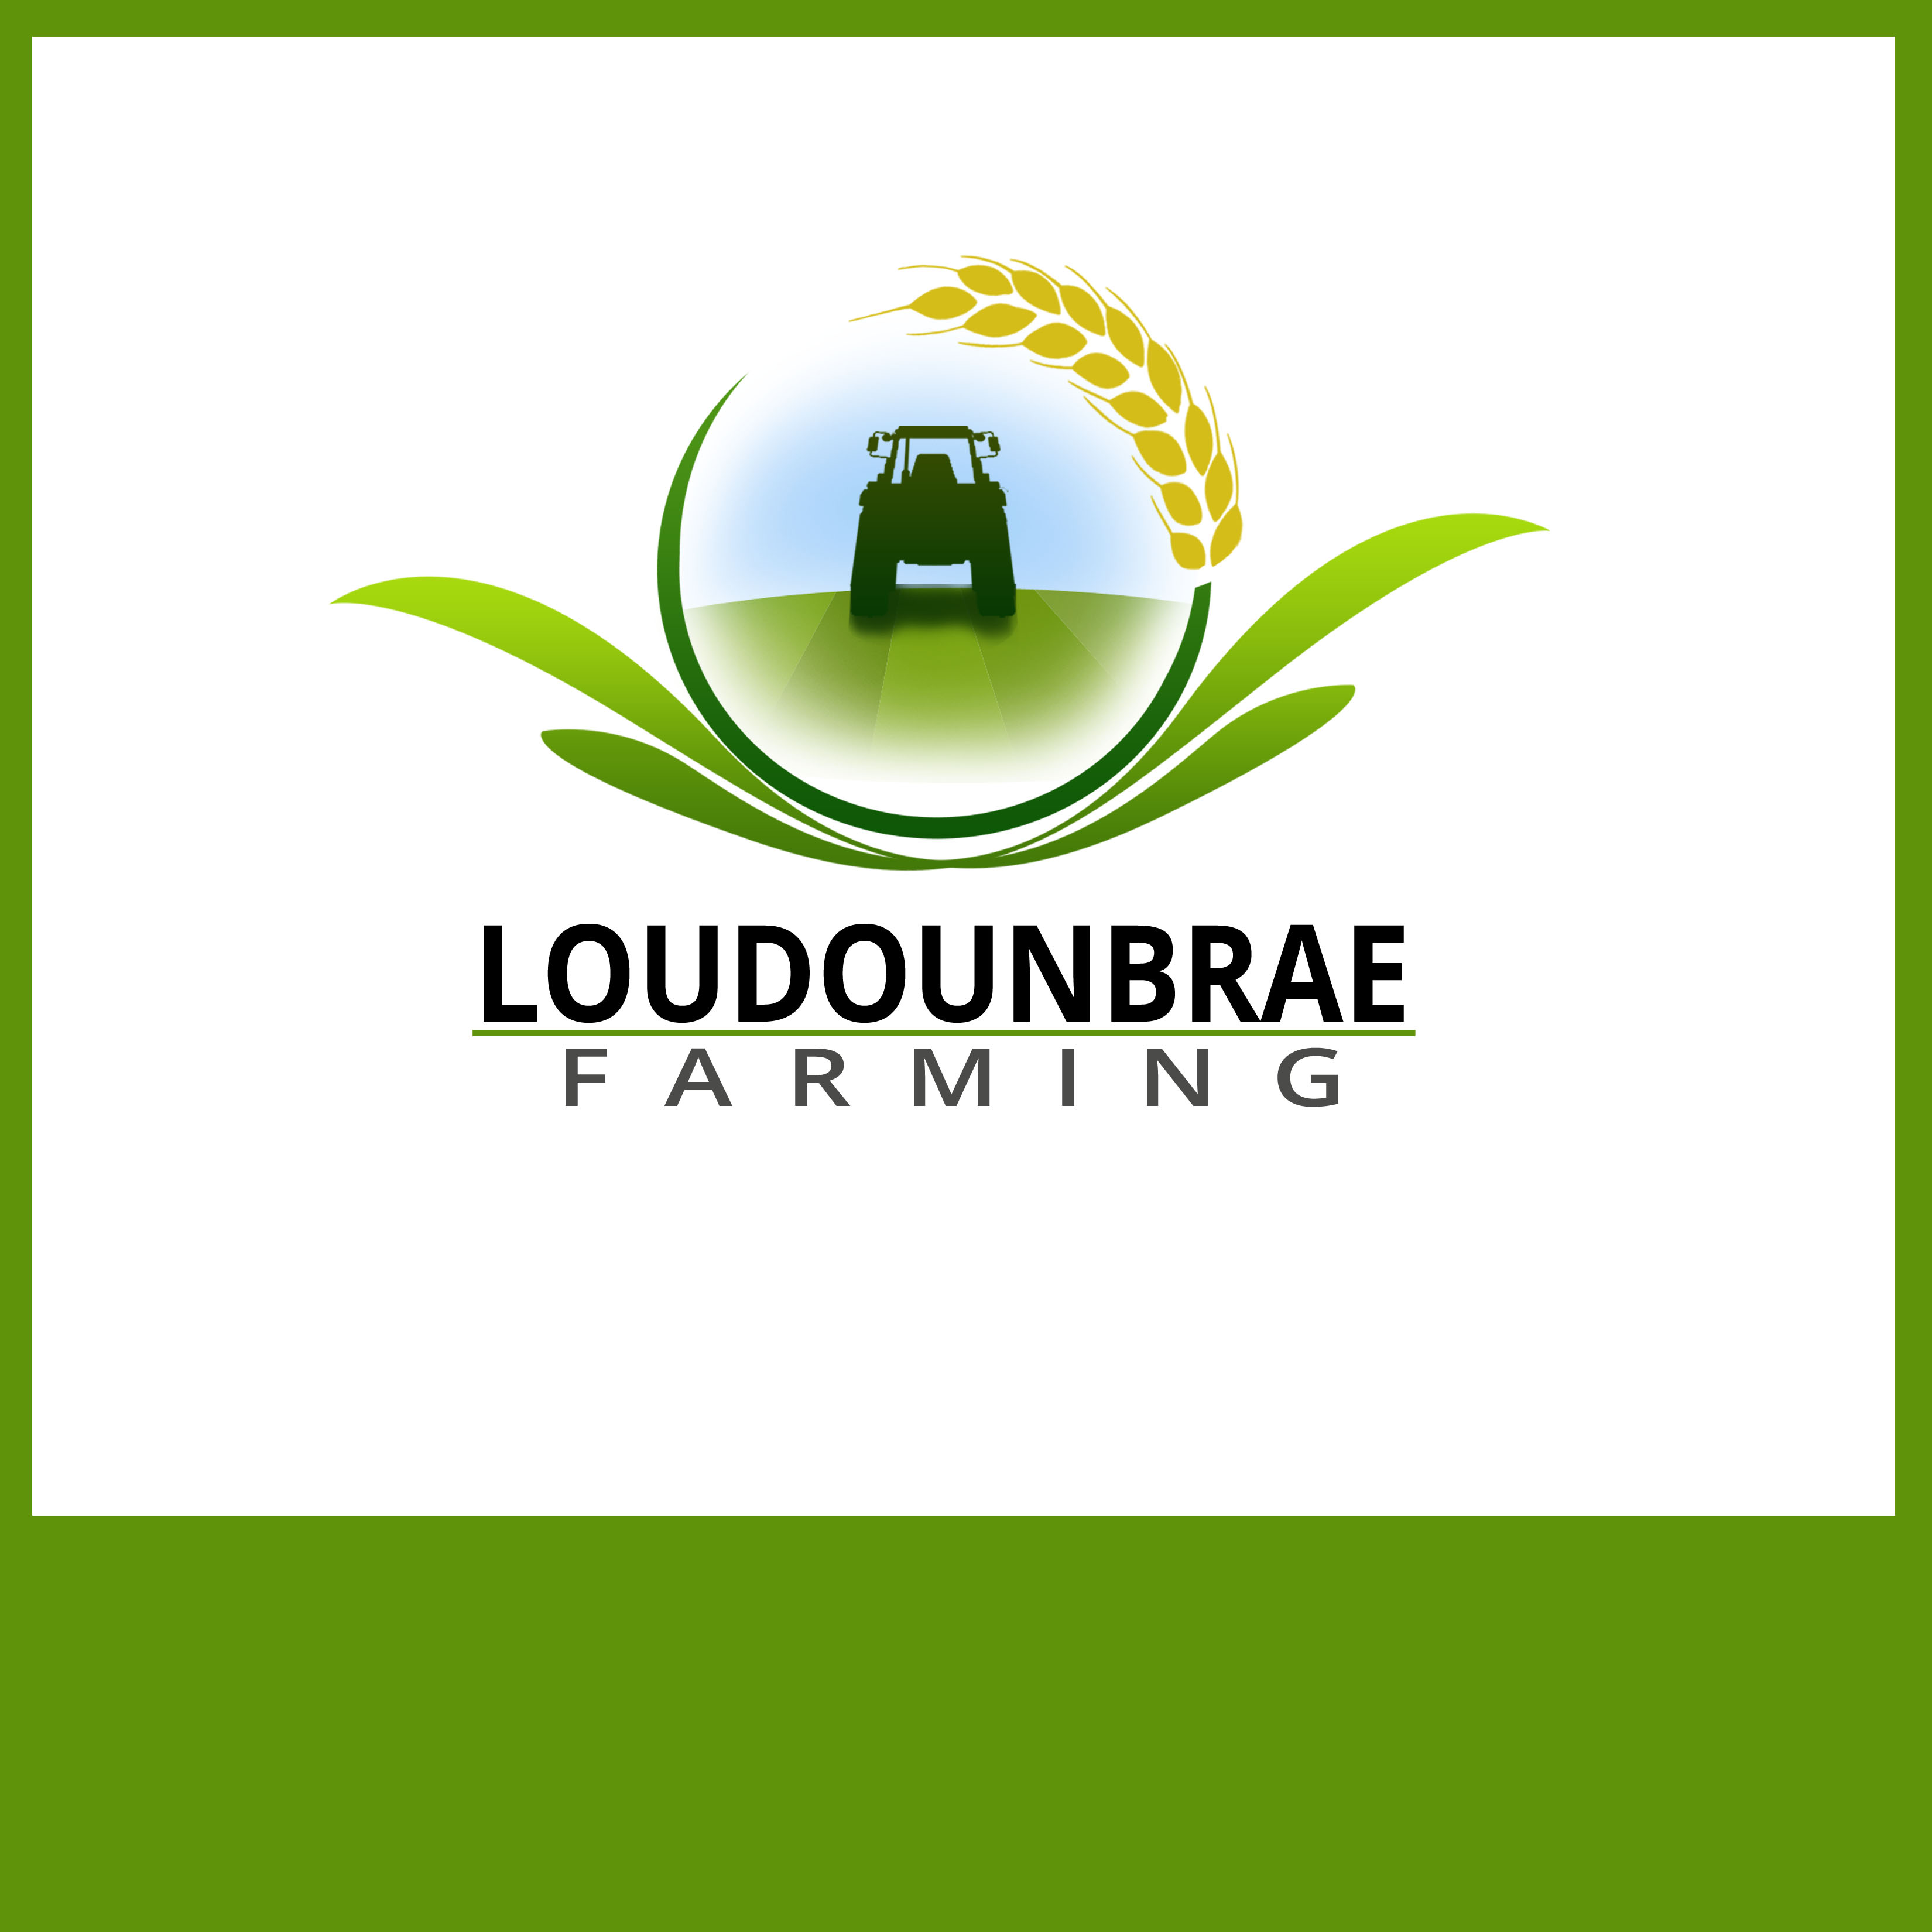 Logo Design by Allan Esclamado - Entry No. 82 in the Logo Design Contest Creative Logo Design for Loudounbrae Farming.